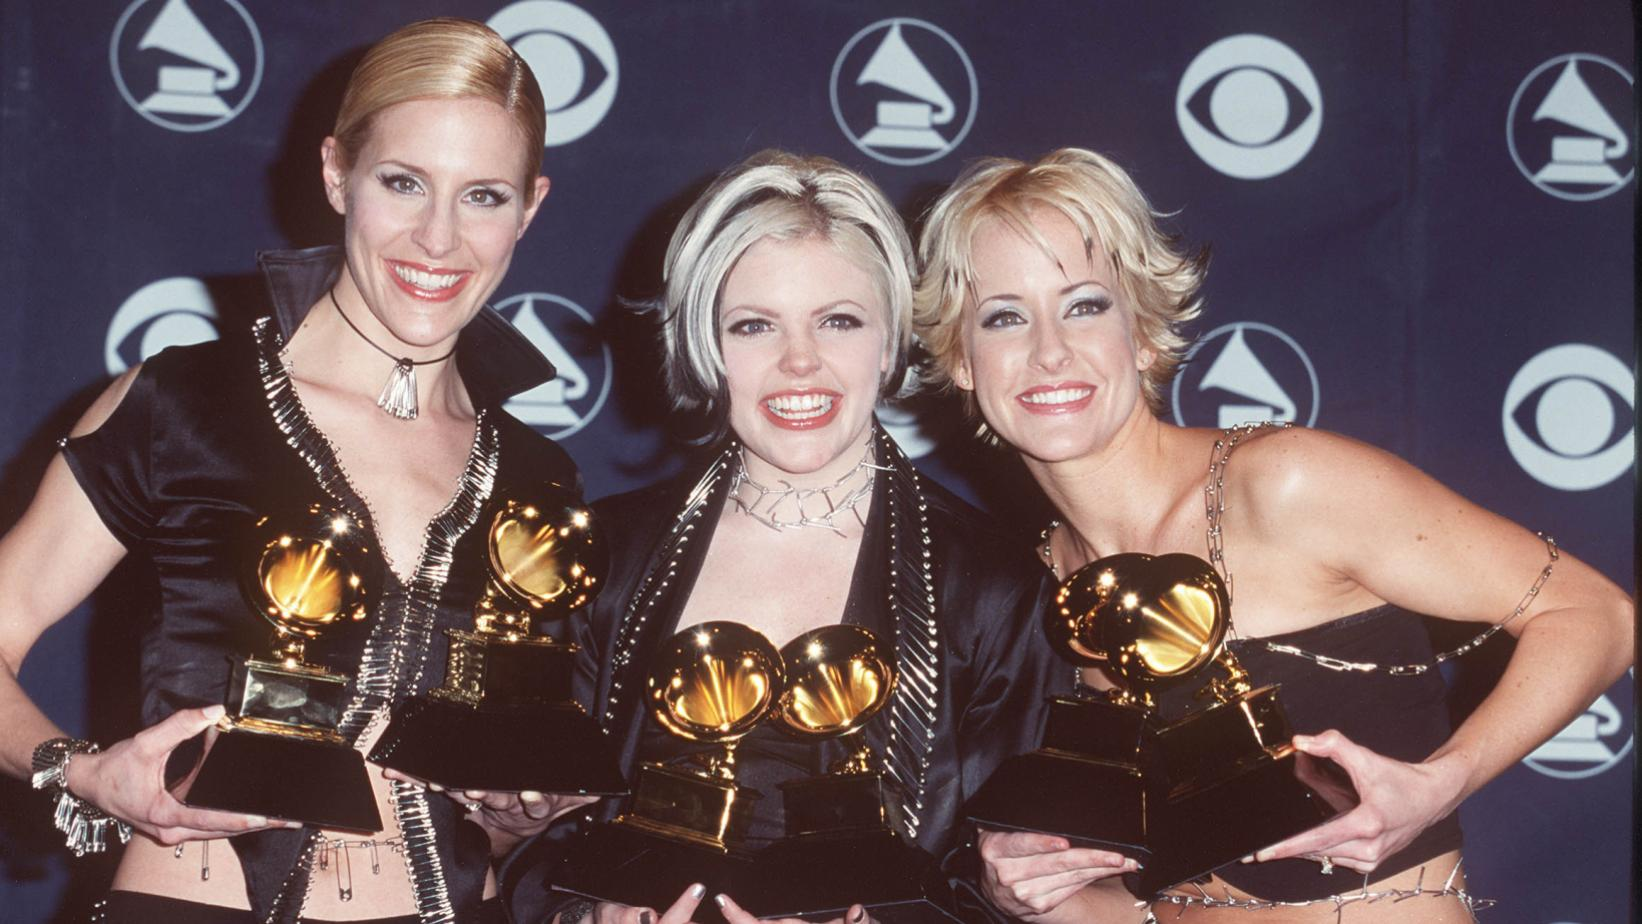 dixie_chicks-88207329.jpg